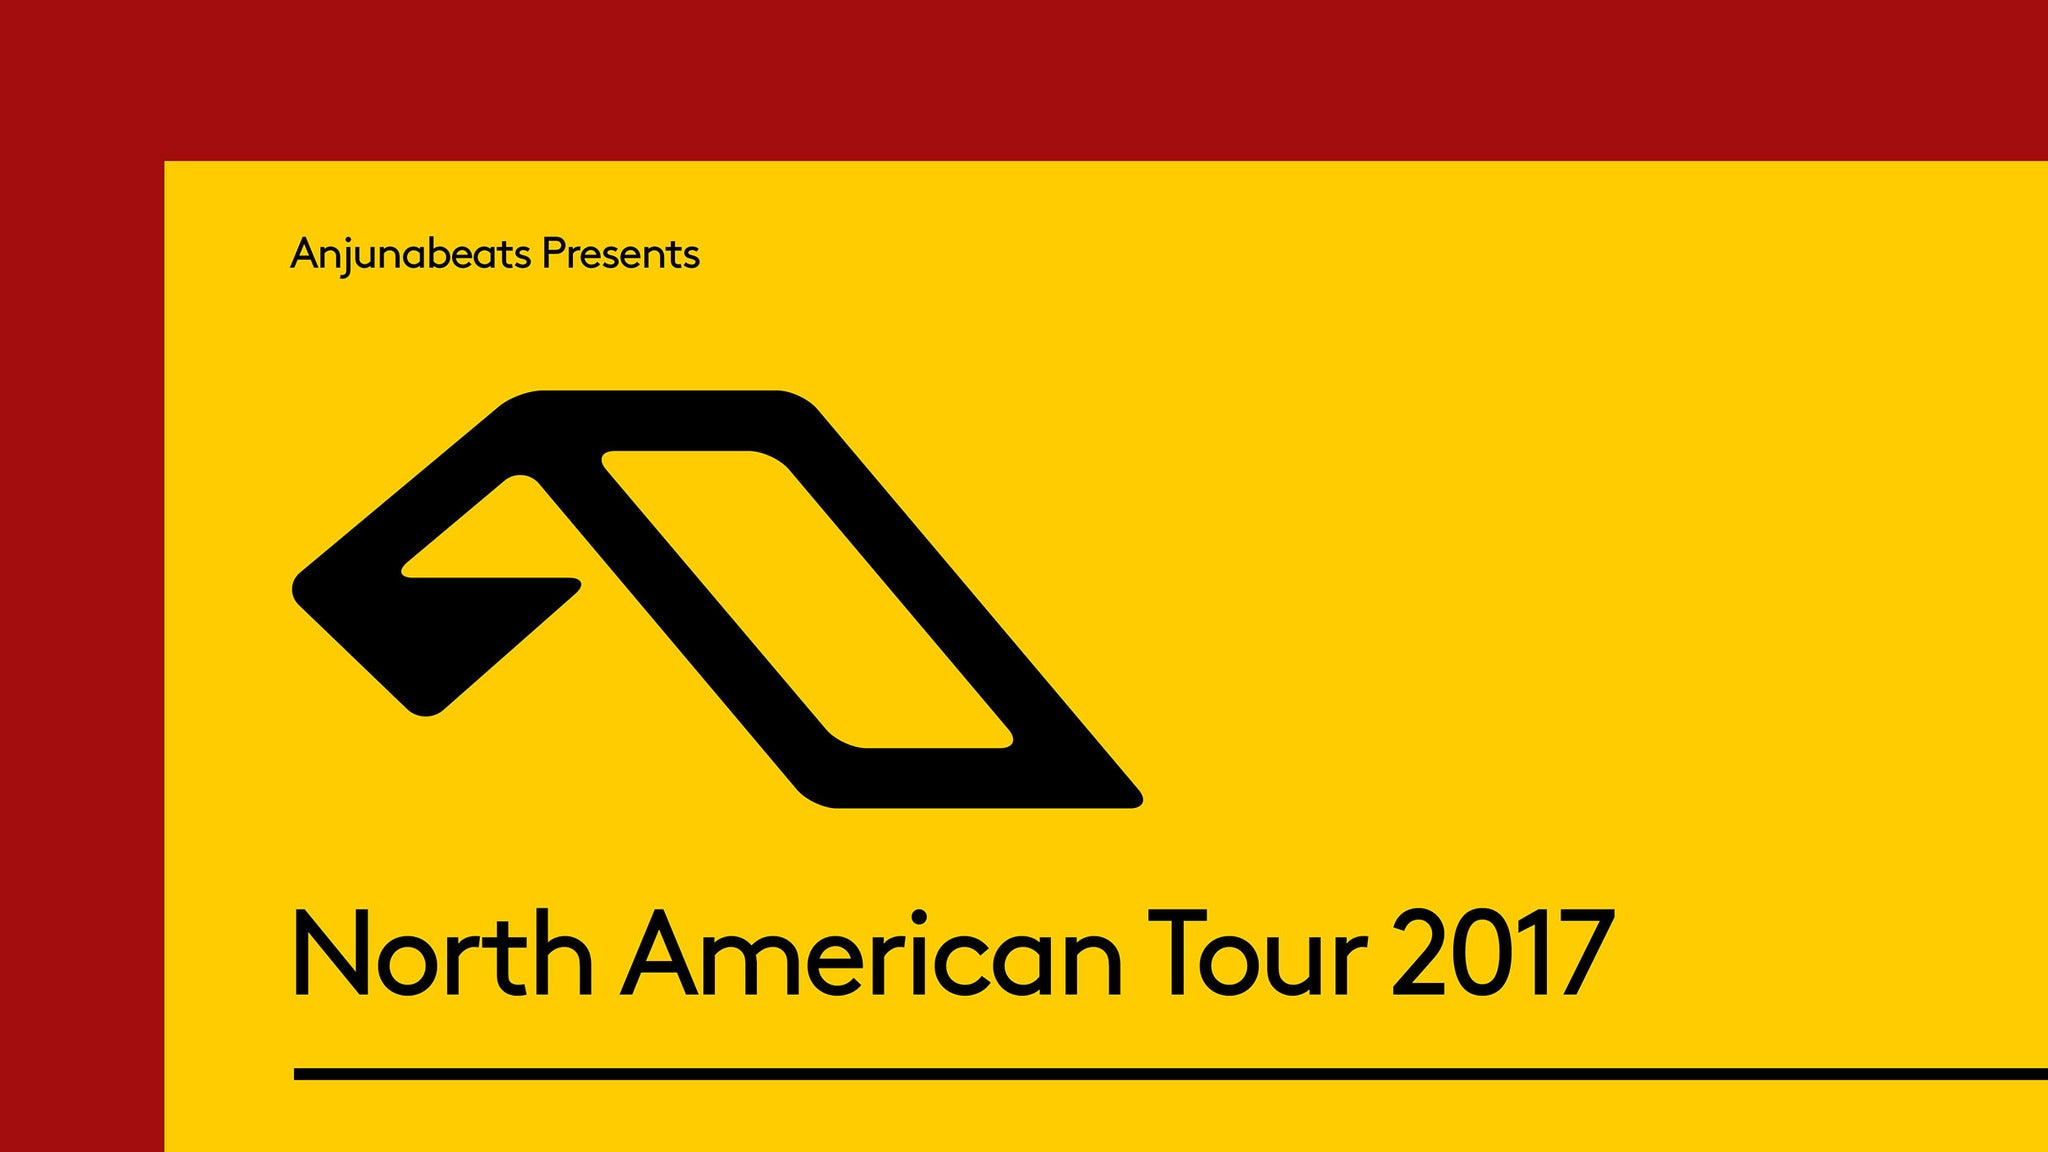 Anjunabeats Presents: North American Tour 2017 at Echostage